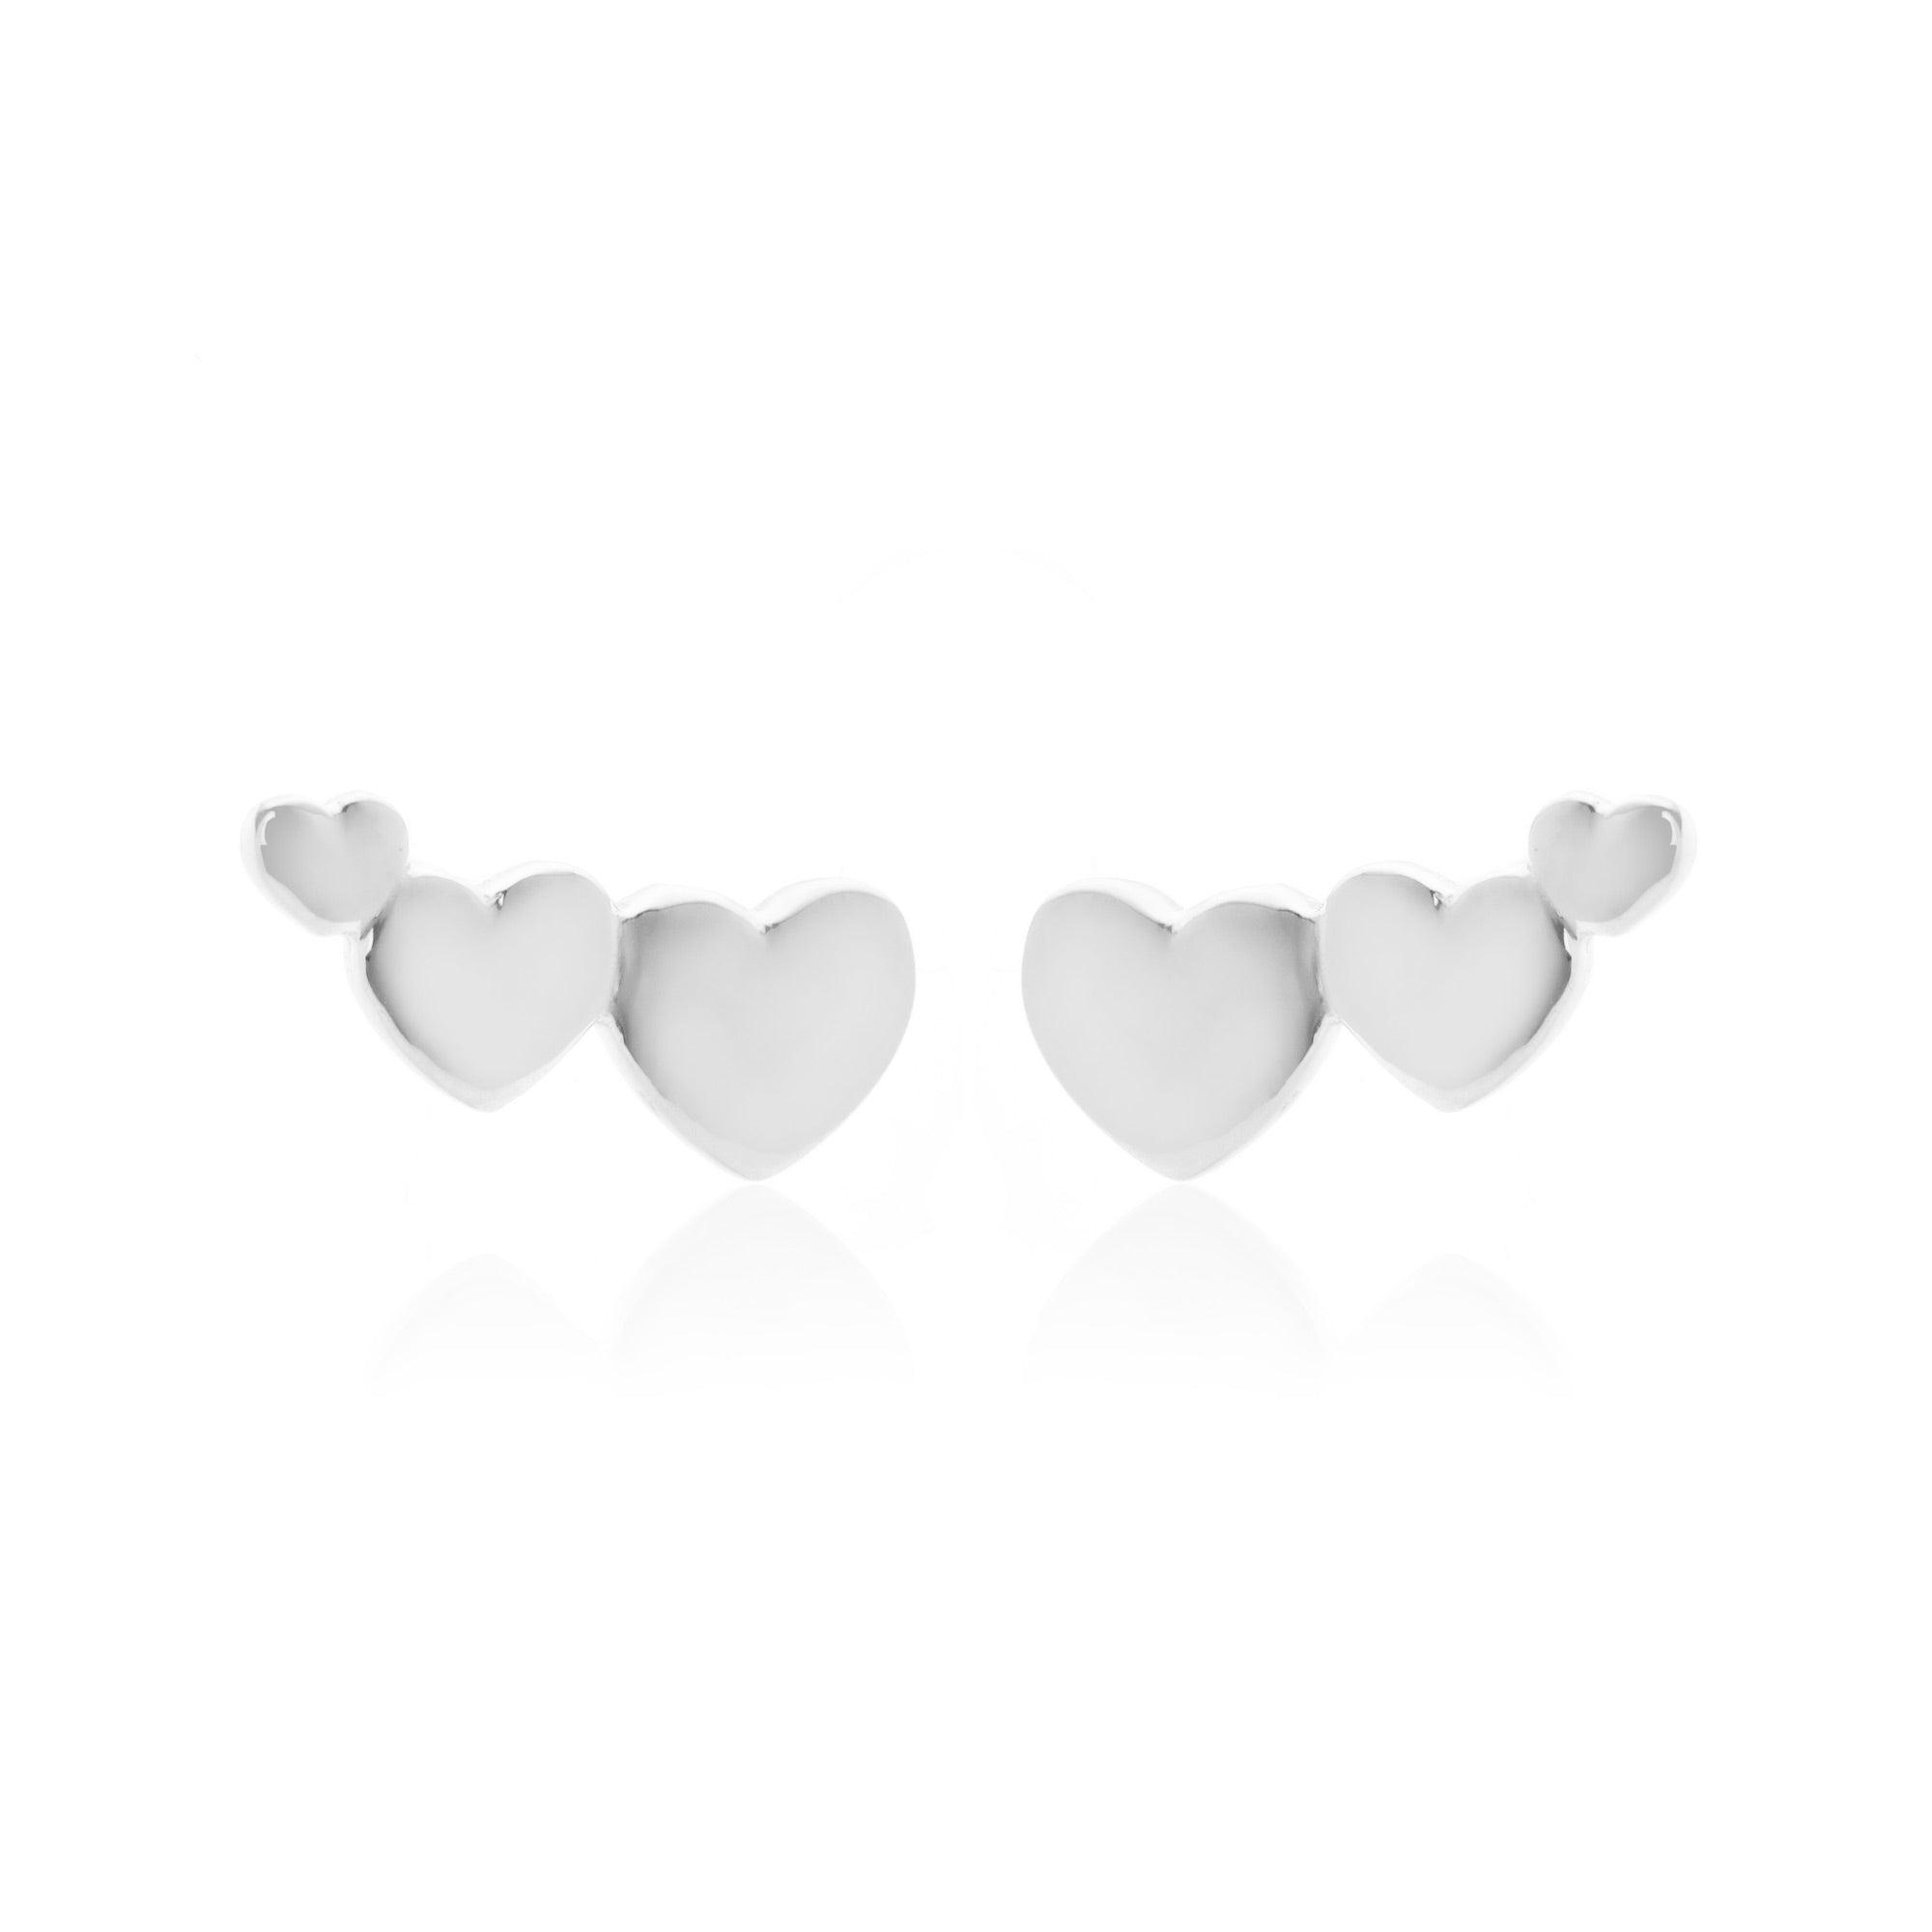 Silk & Steel Jewellery Superfine Heart Climber Silver earrings